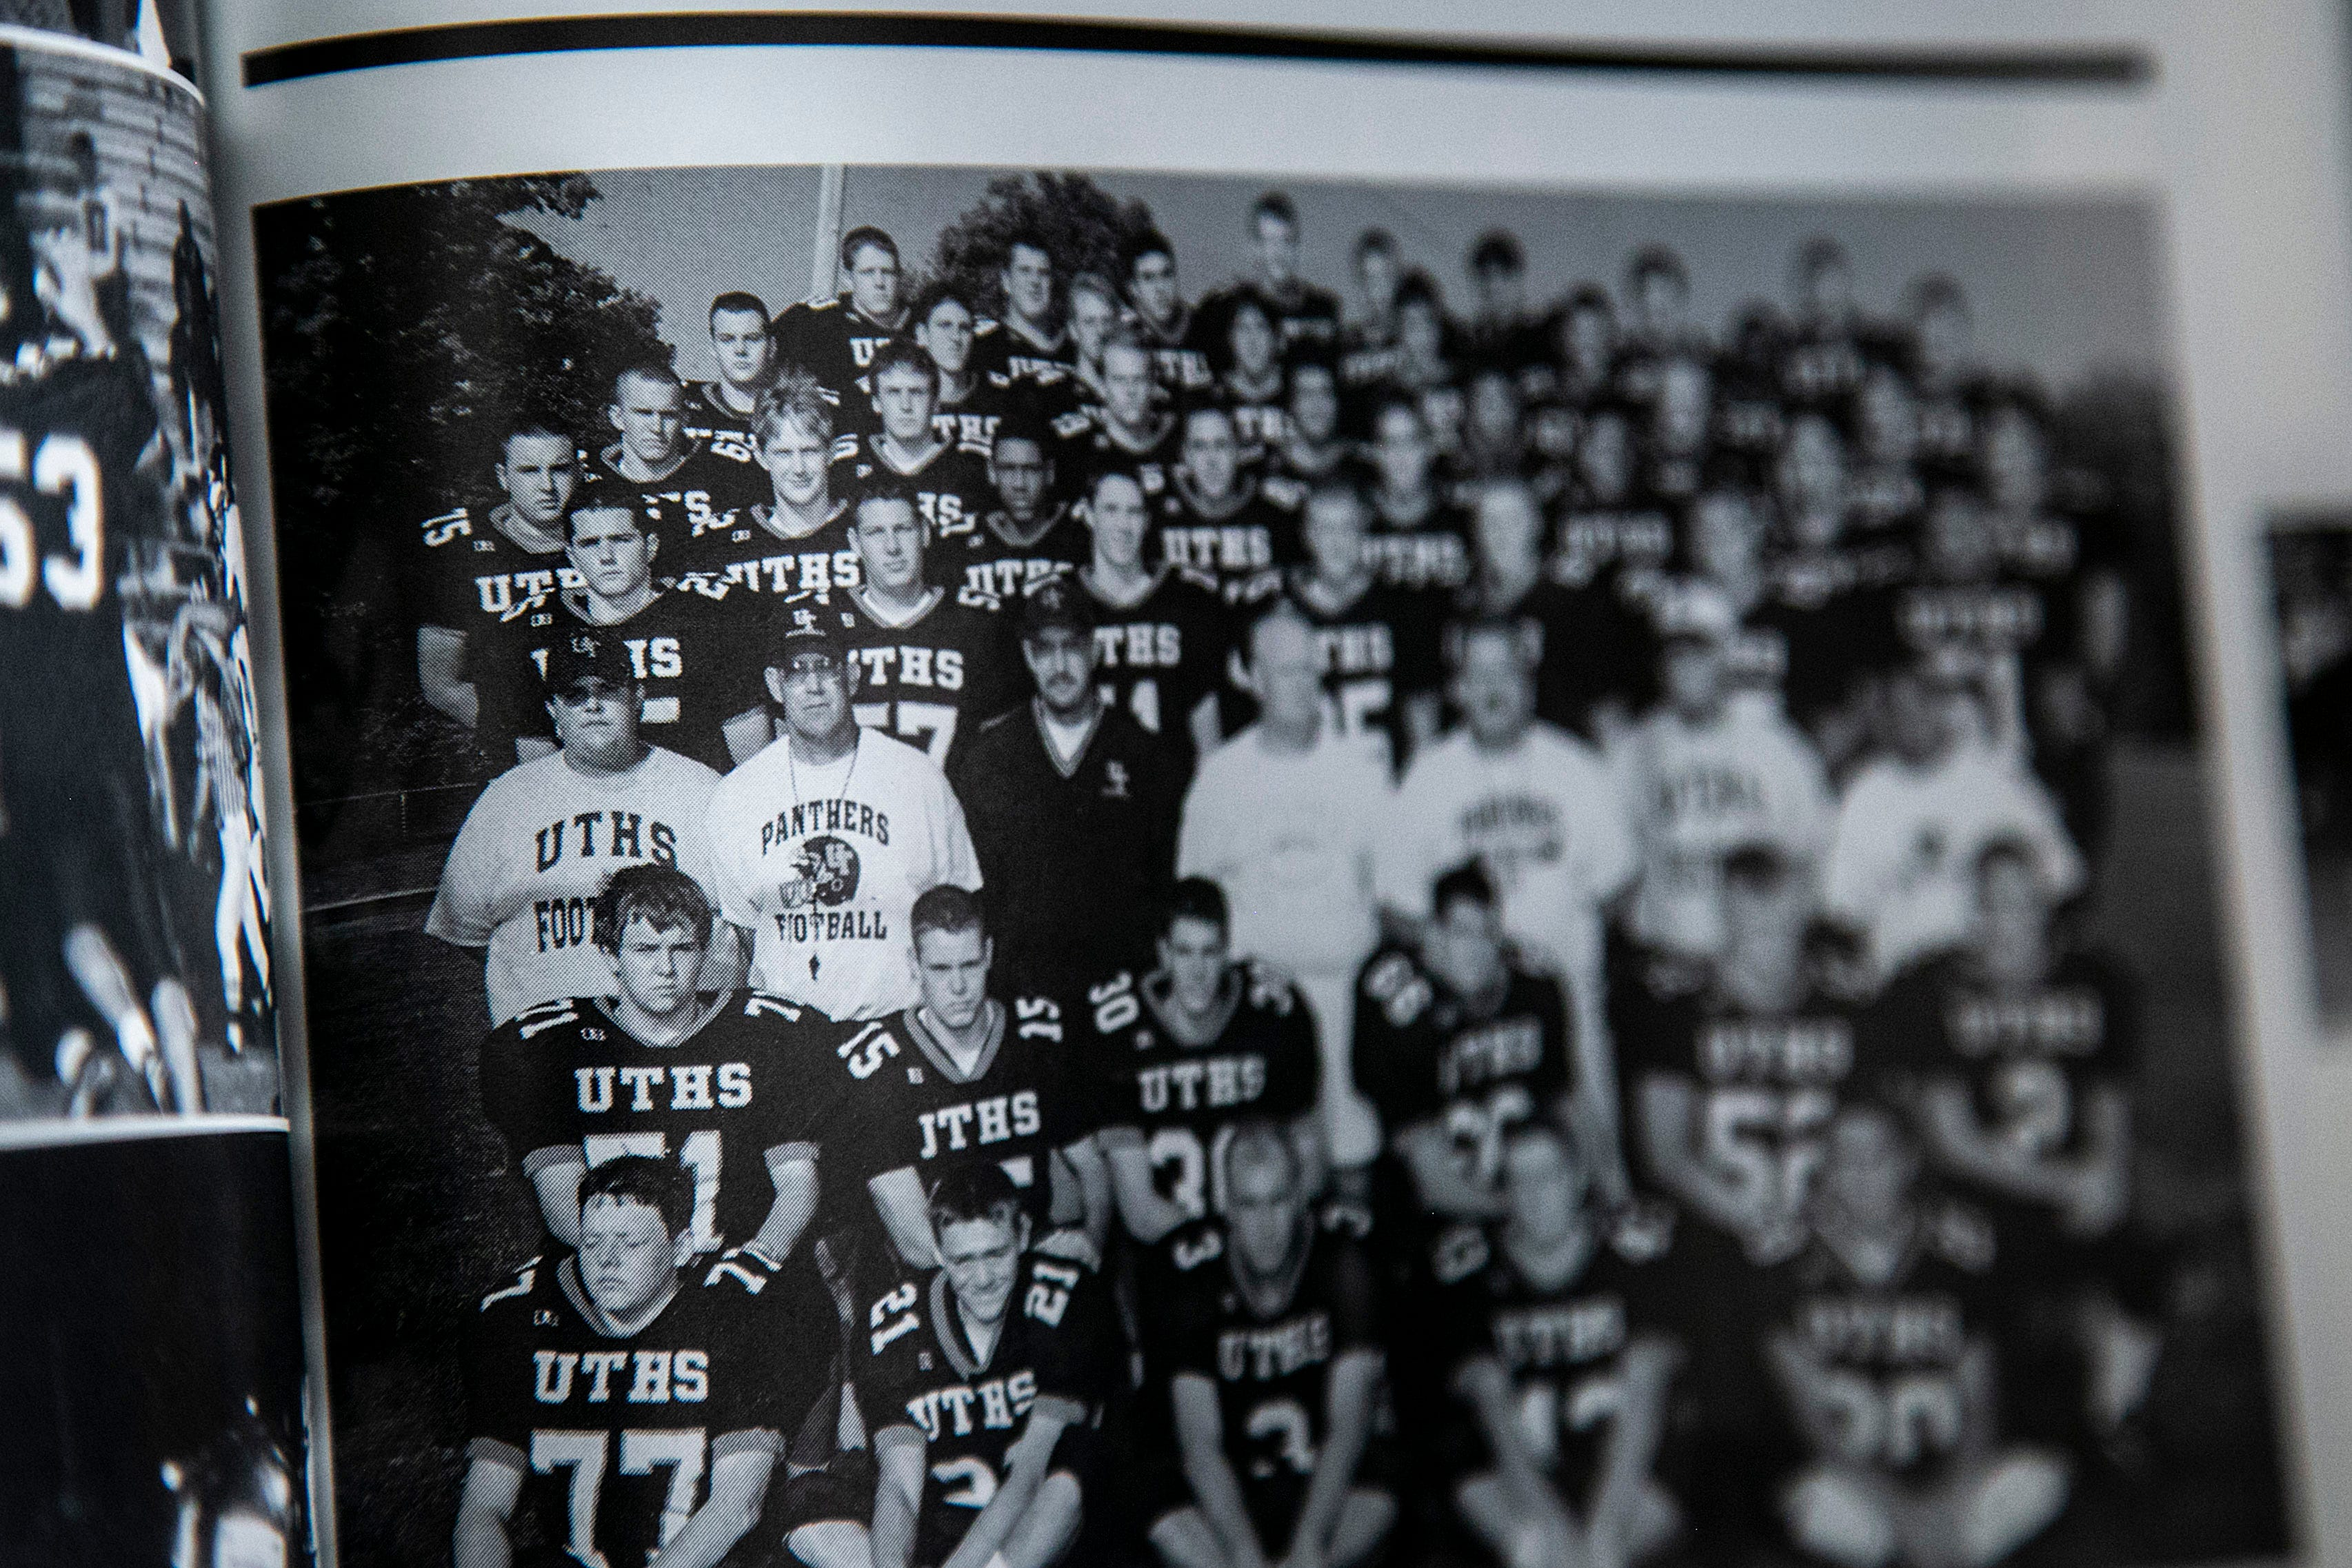 Andy Hughes played football in 2001 at United Township High School.